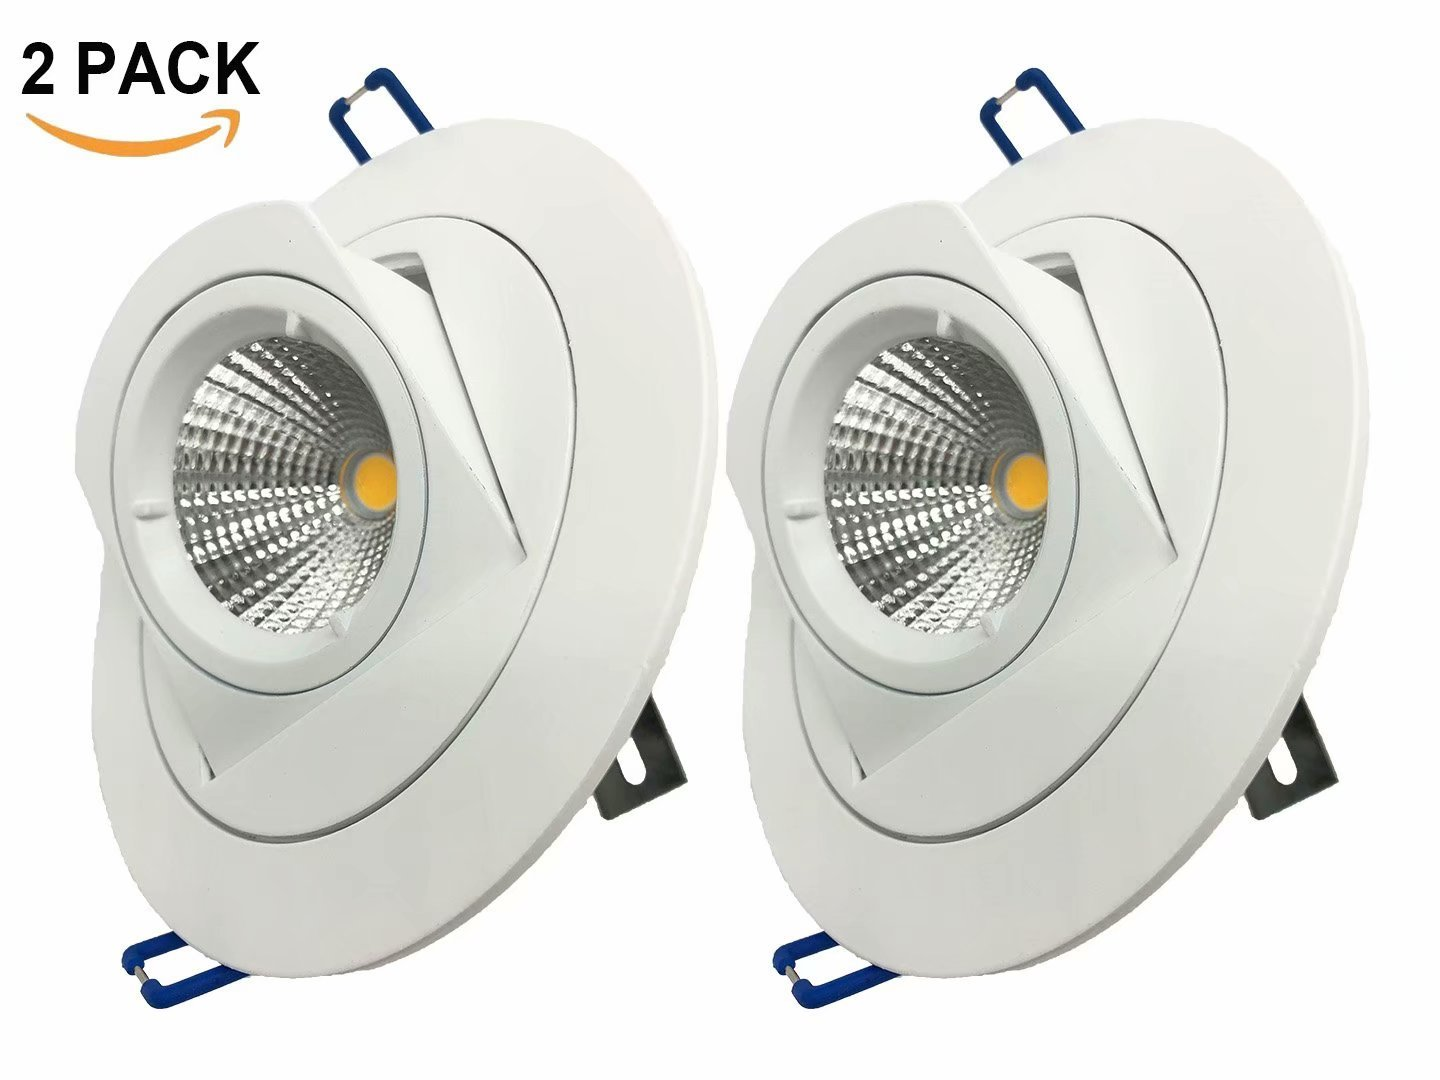 Pertop 2 Packs Downlight Resessed Adjustable,Dimmable Gimbal Recessed LED Downlight 4.25 inches,10W 3000K-3500K Soft White,980LM,Adjustable LED Retrofit Lighting Fixture, 3 YEARS WARRANTY